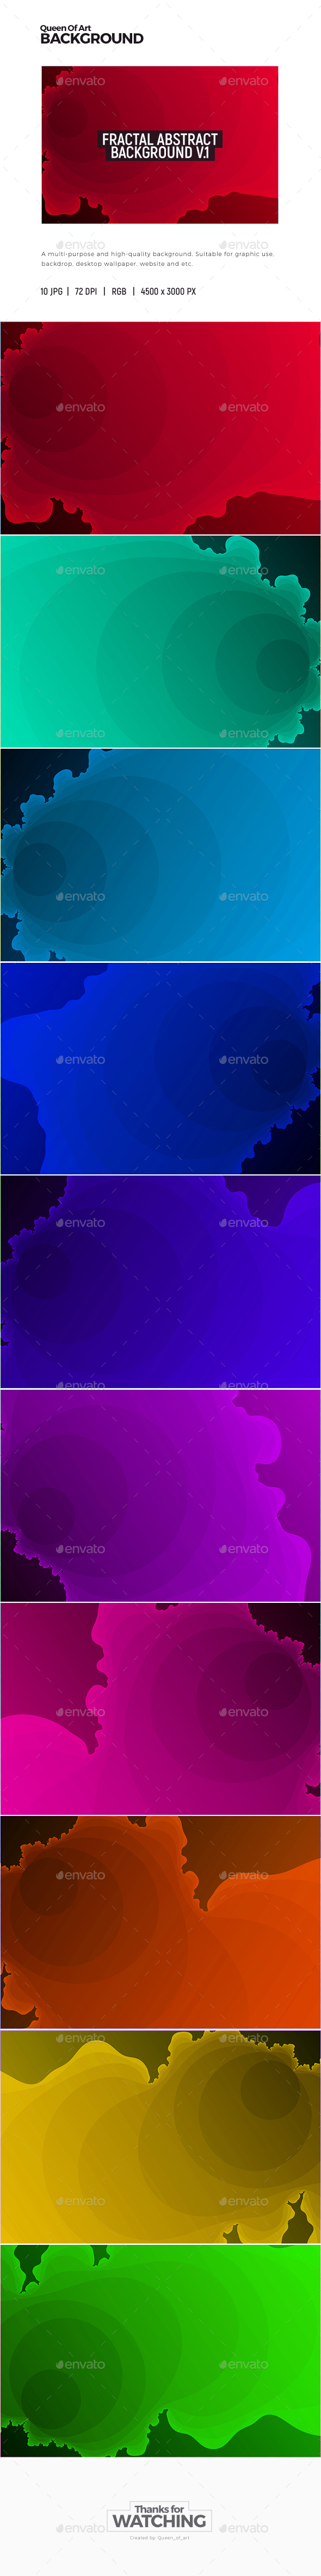 Fractal Abstract Background 1 - Abstract Backgrounds